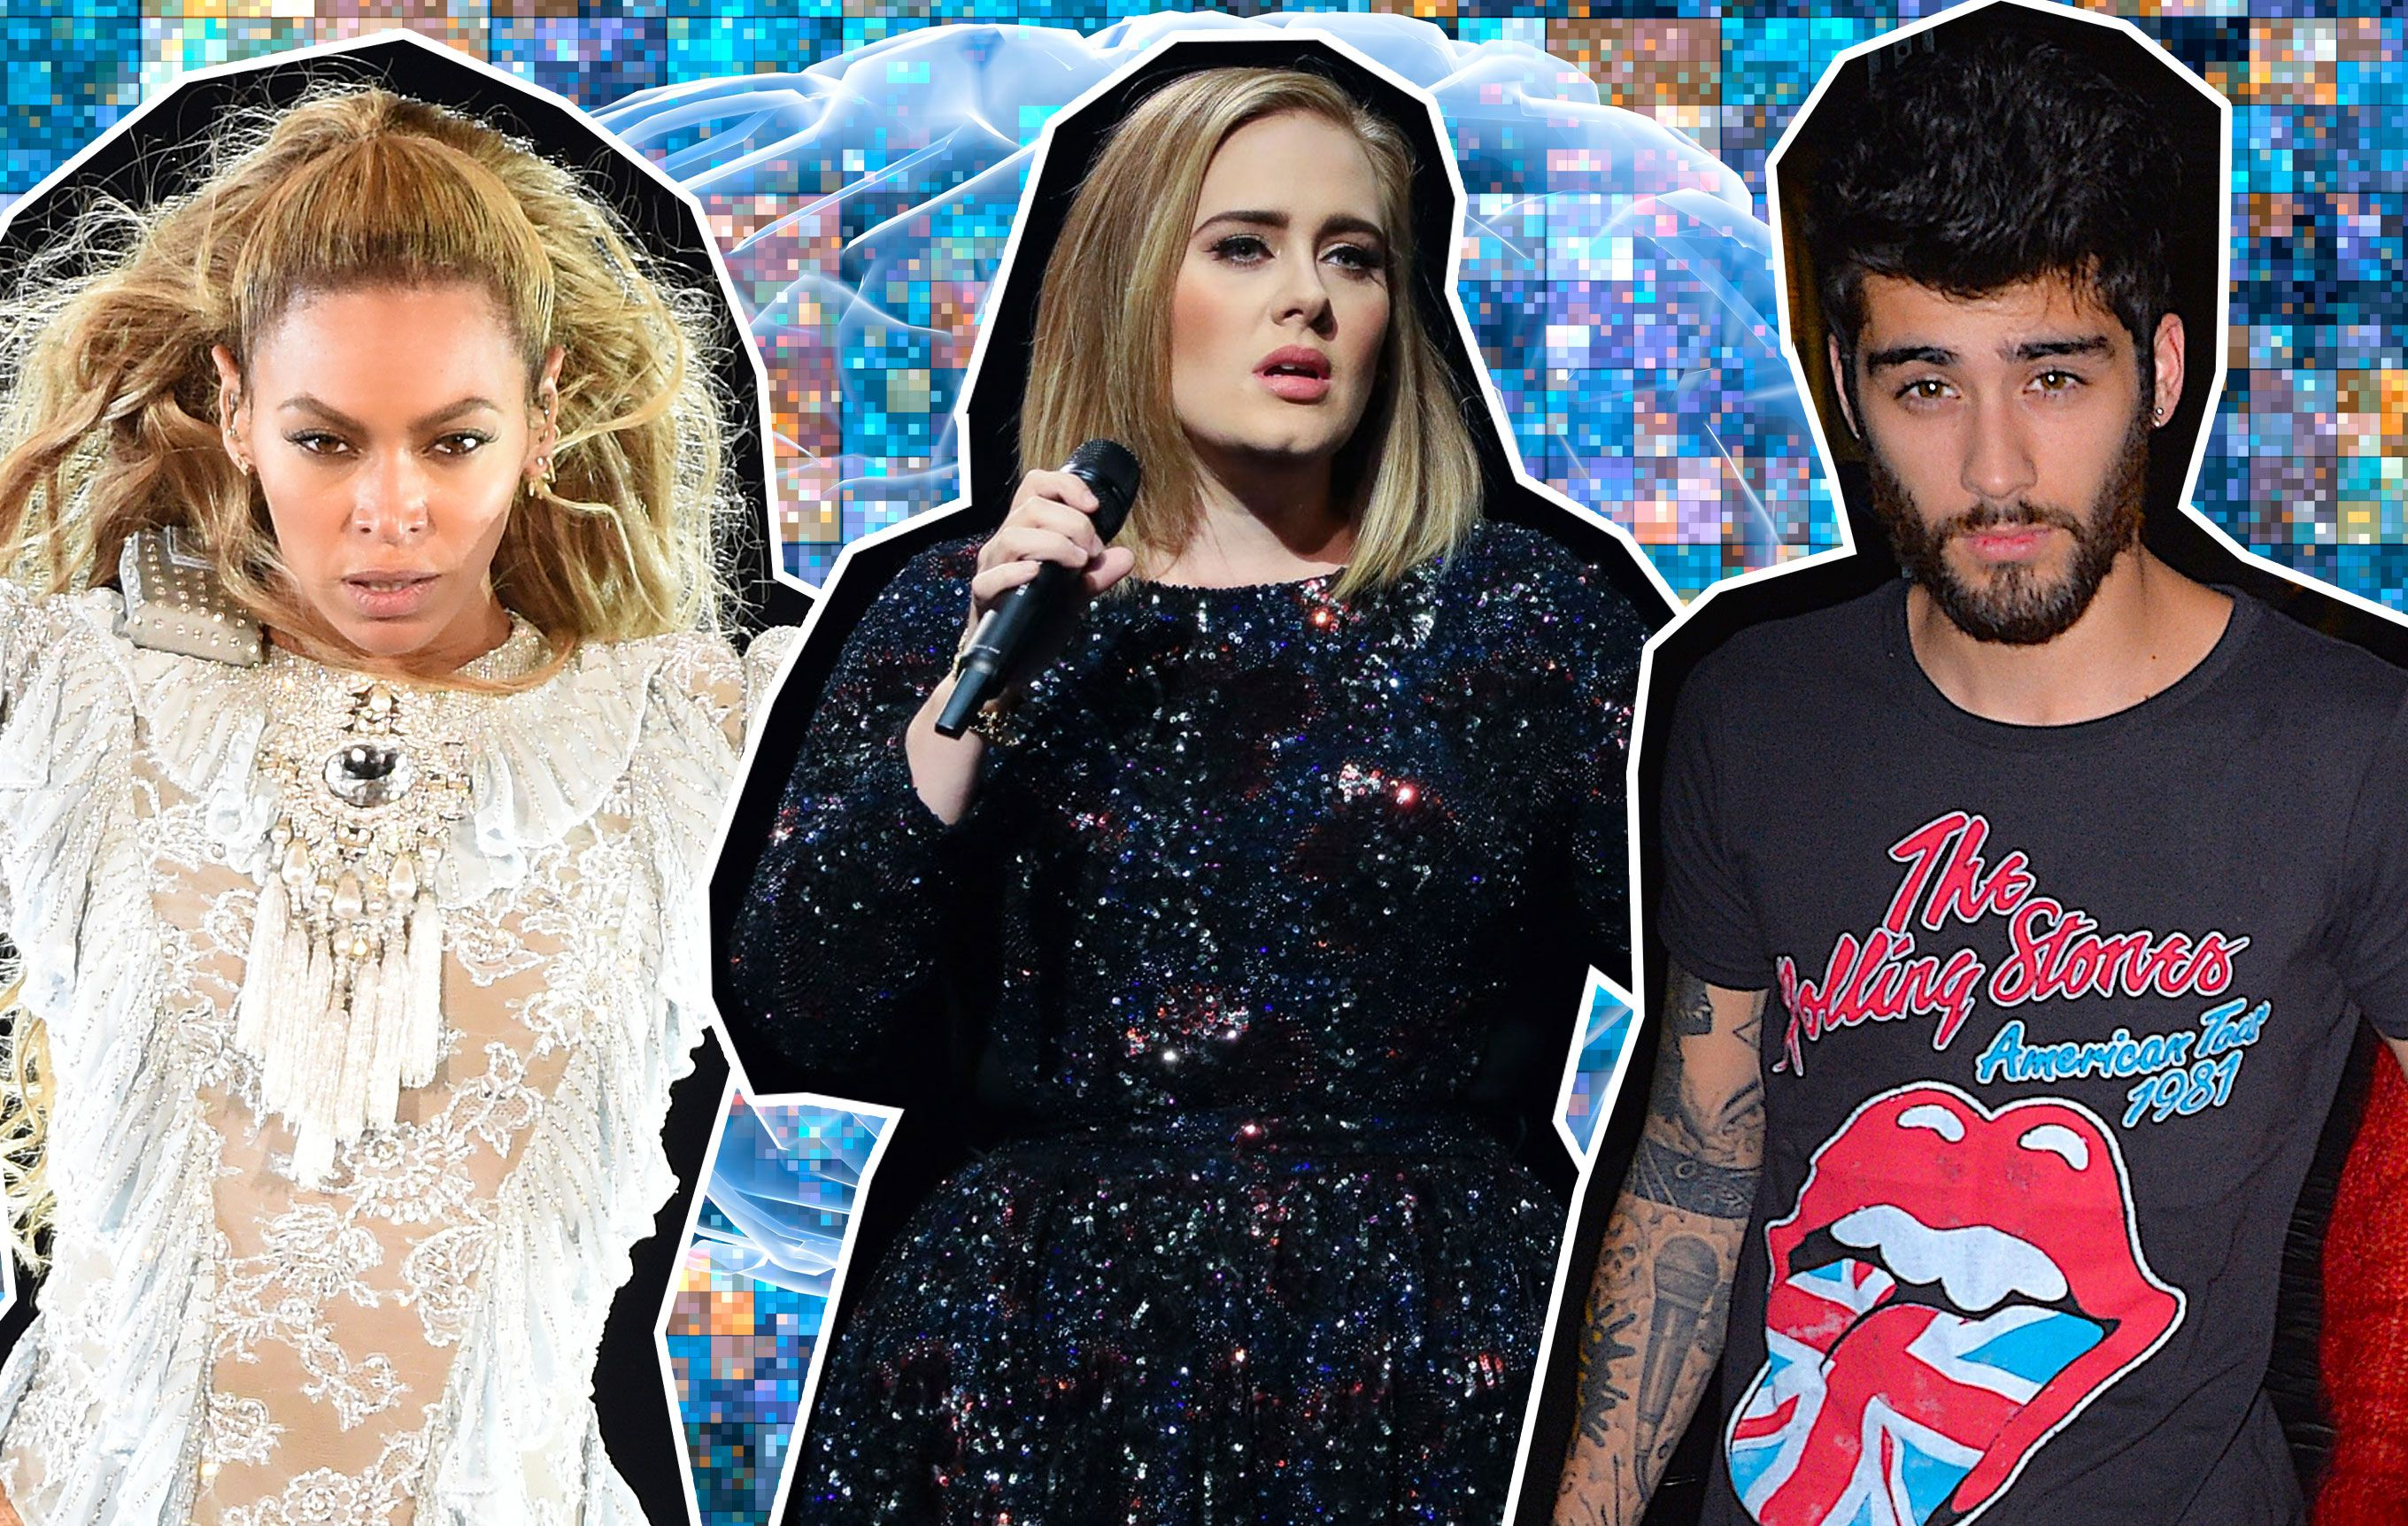 17 popstars talk about their struggles with mental illness